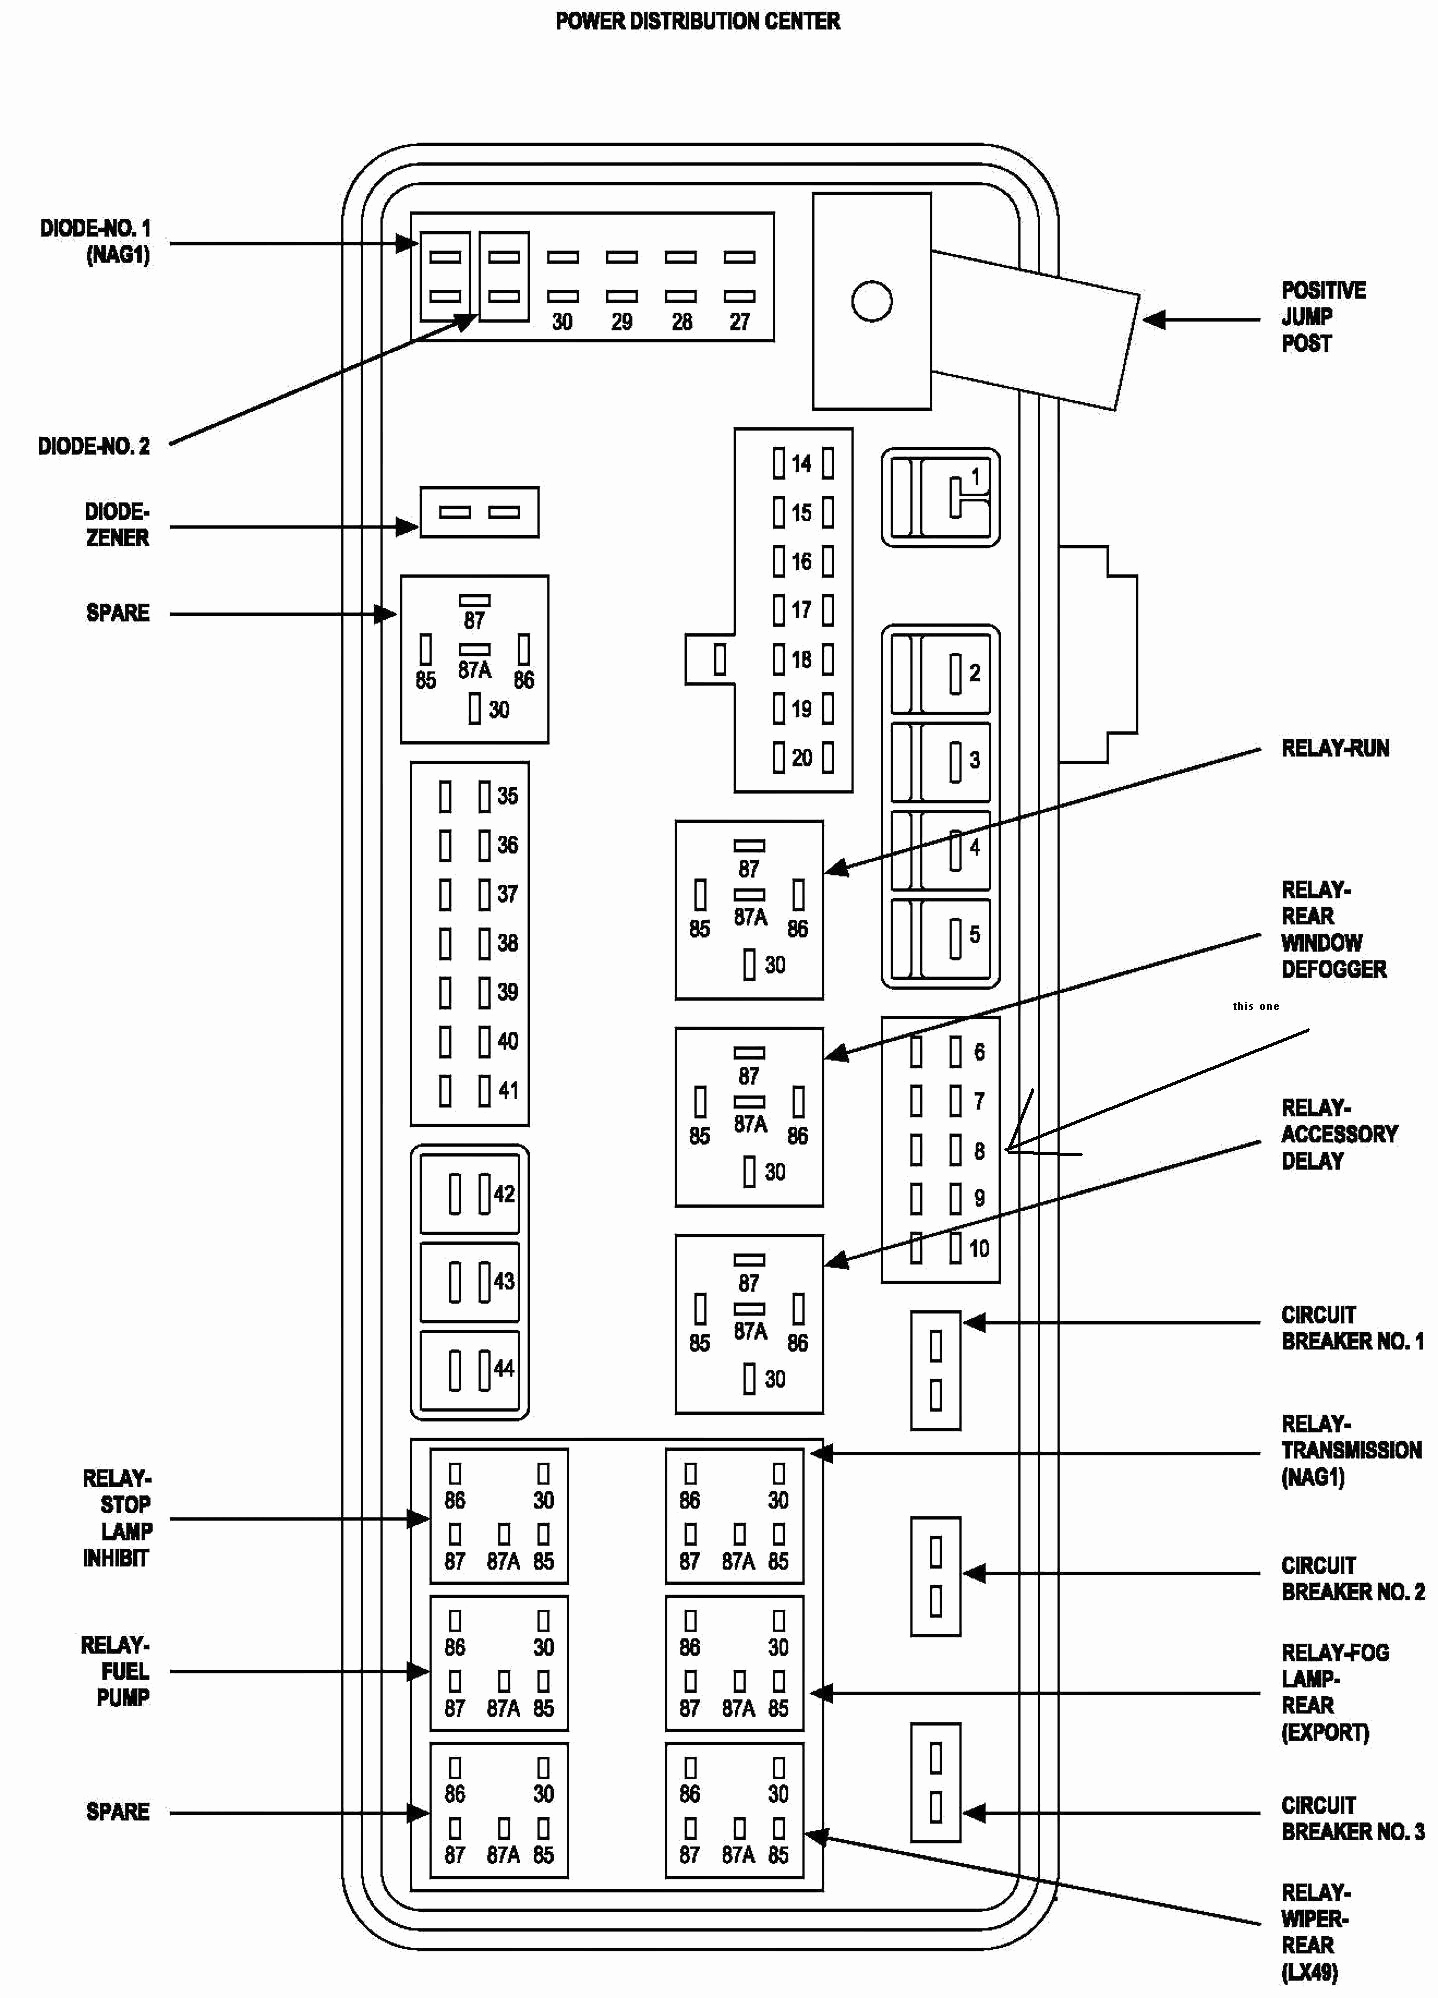 Wiring Diagram For Dodge Charger Rt